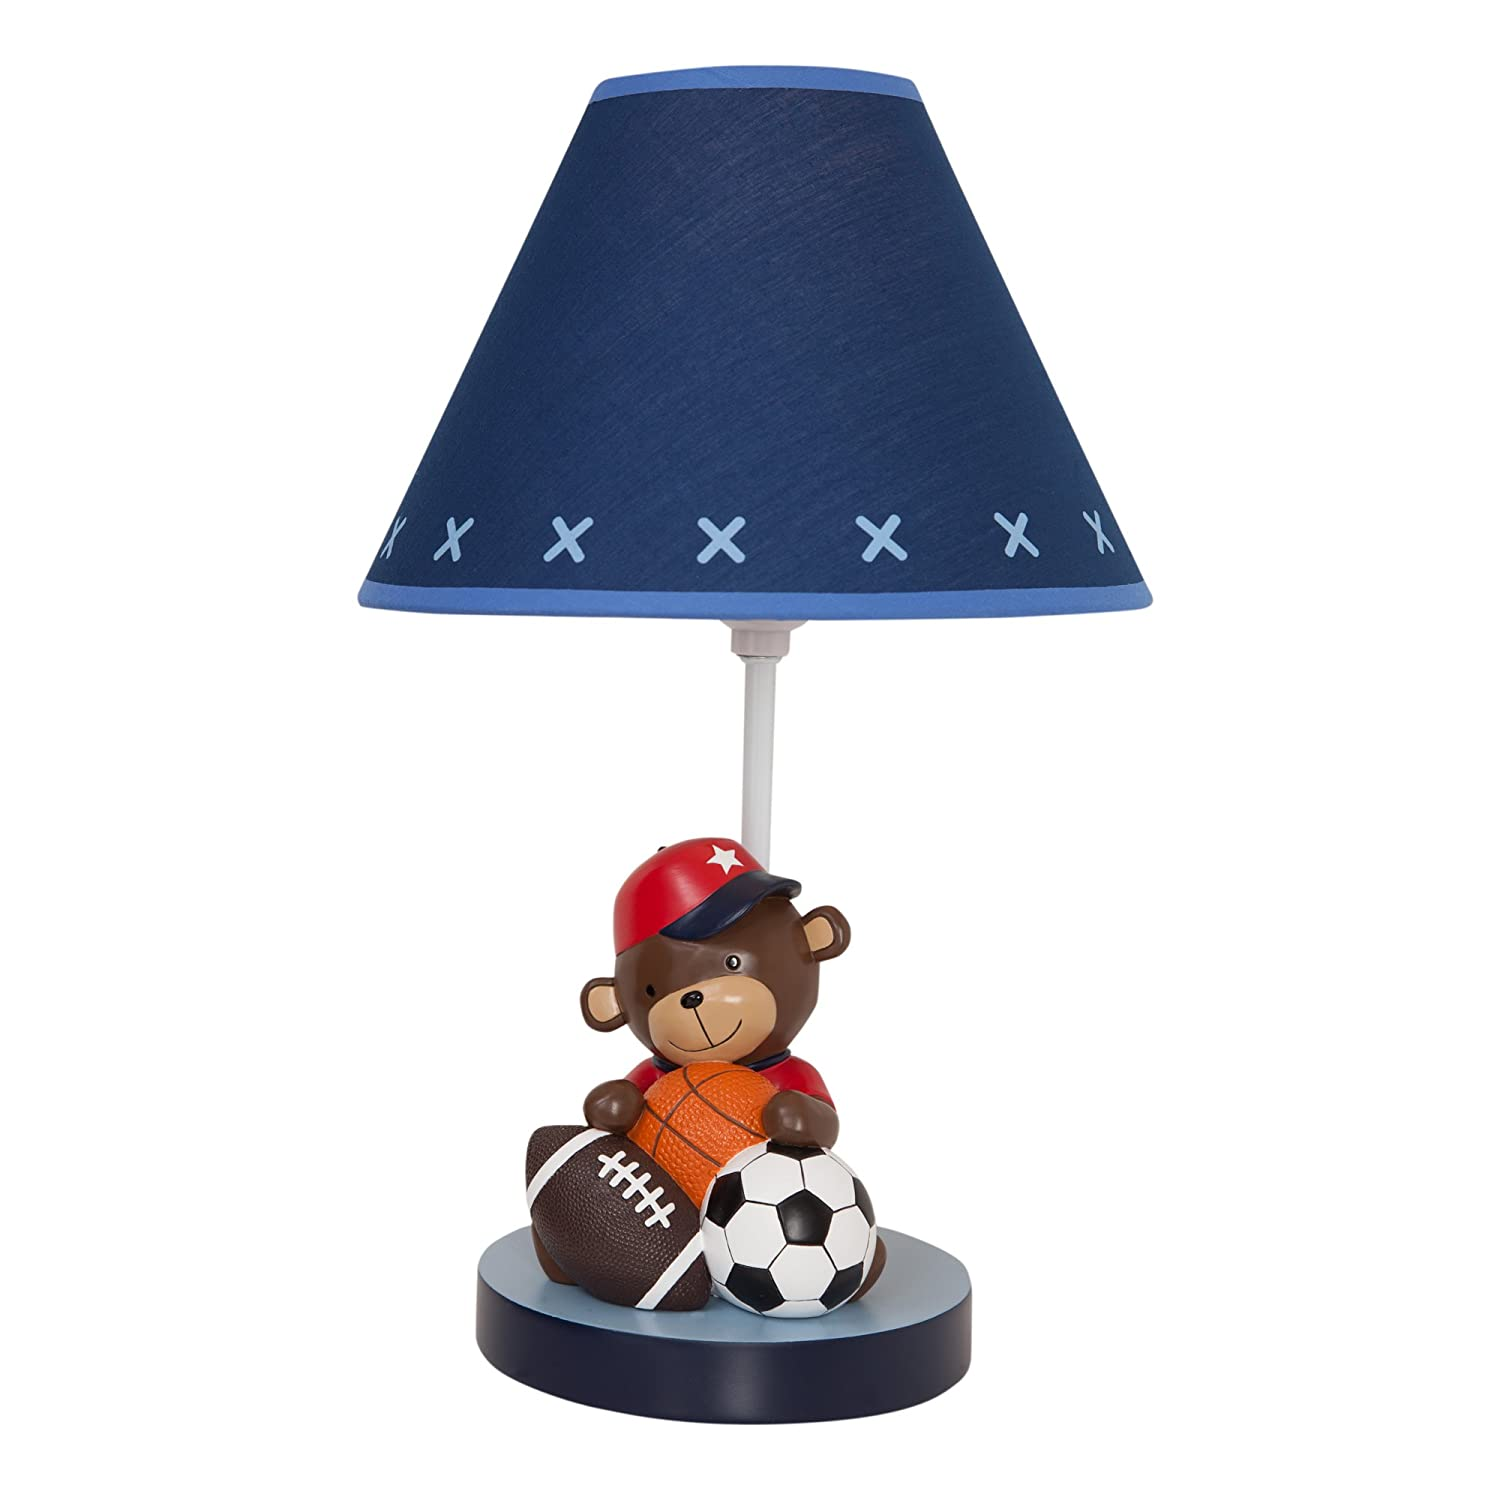 All star lamp shade bulb nursery light monkey sports soccer image is loading all star lamp shade bulb nursery light monkey mozeypictures Images